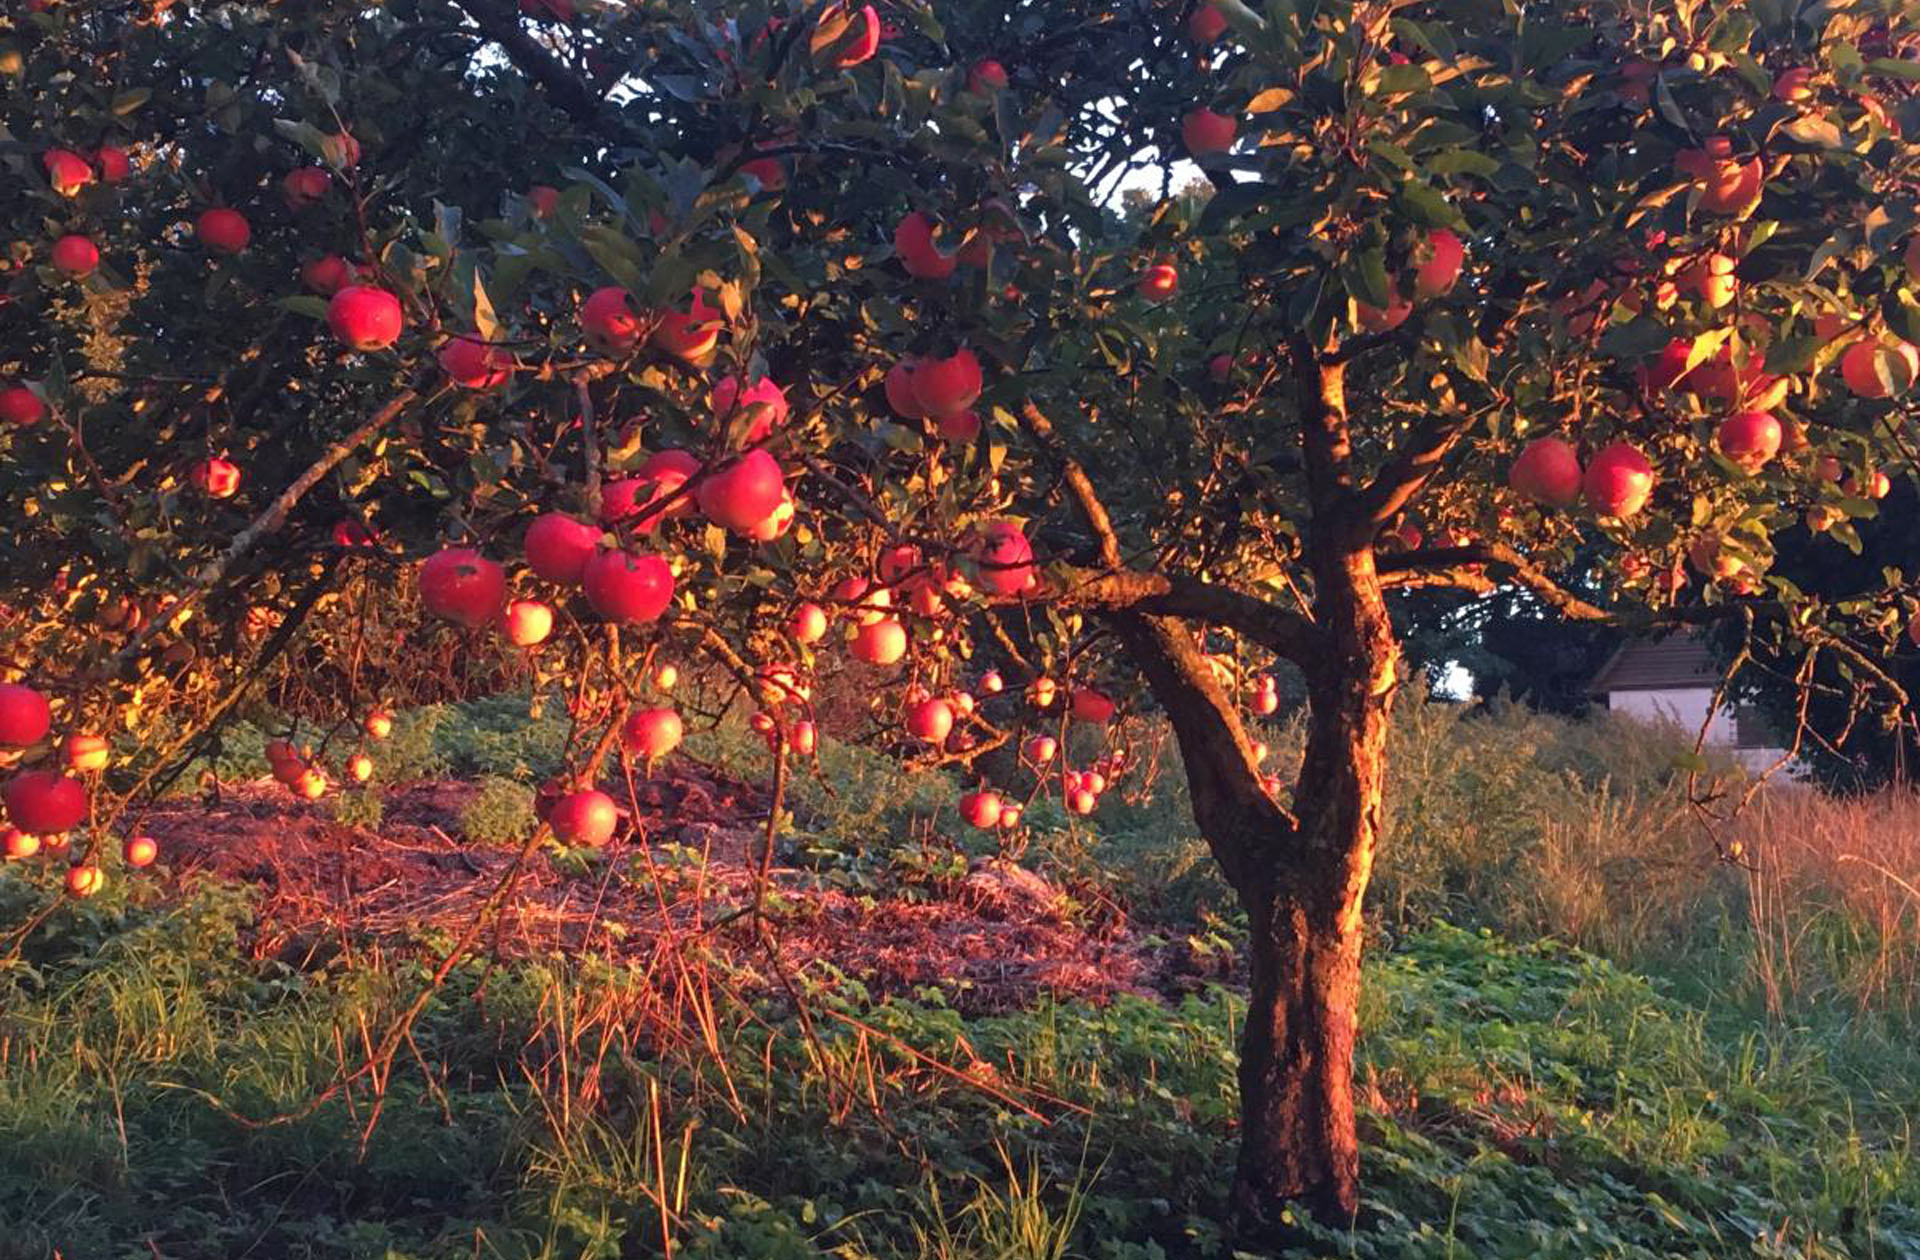 Sunset apples